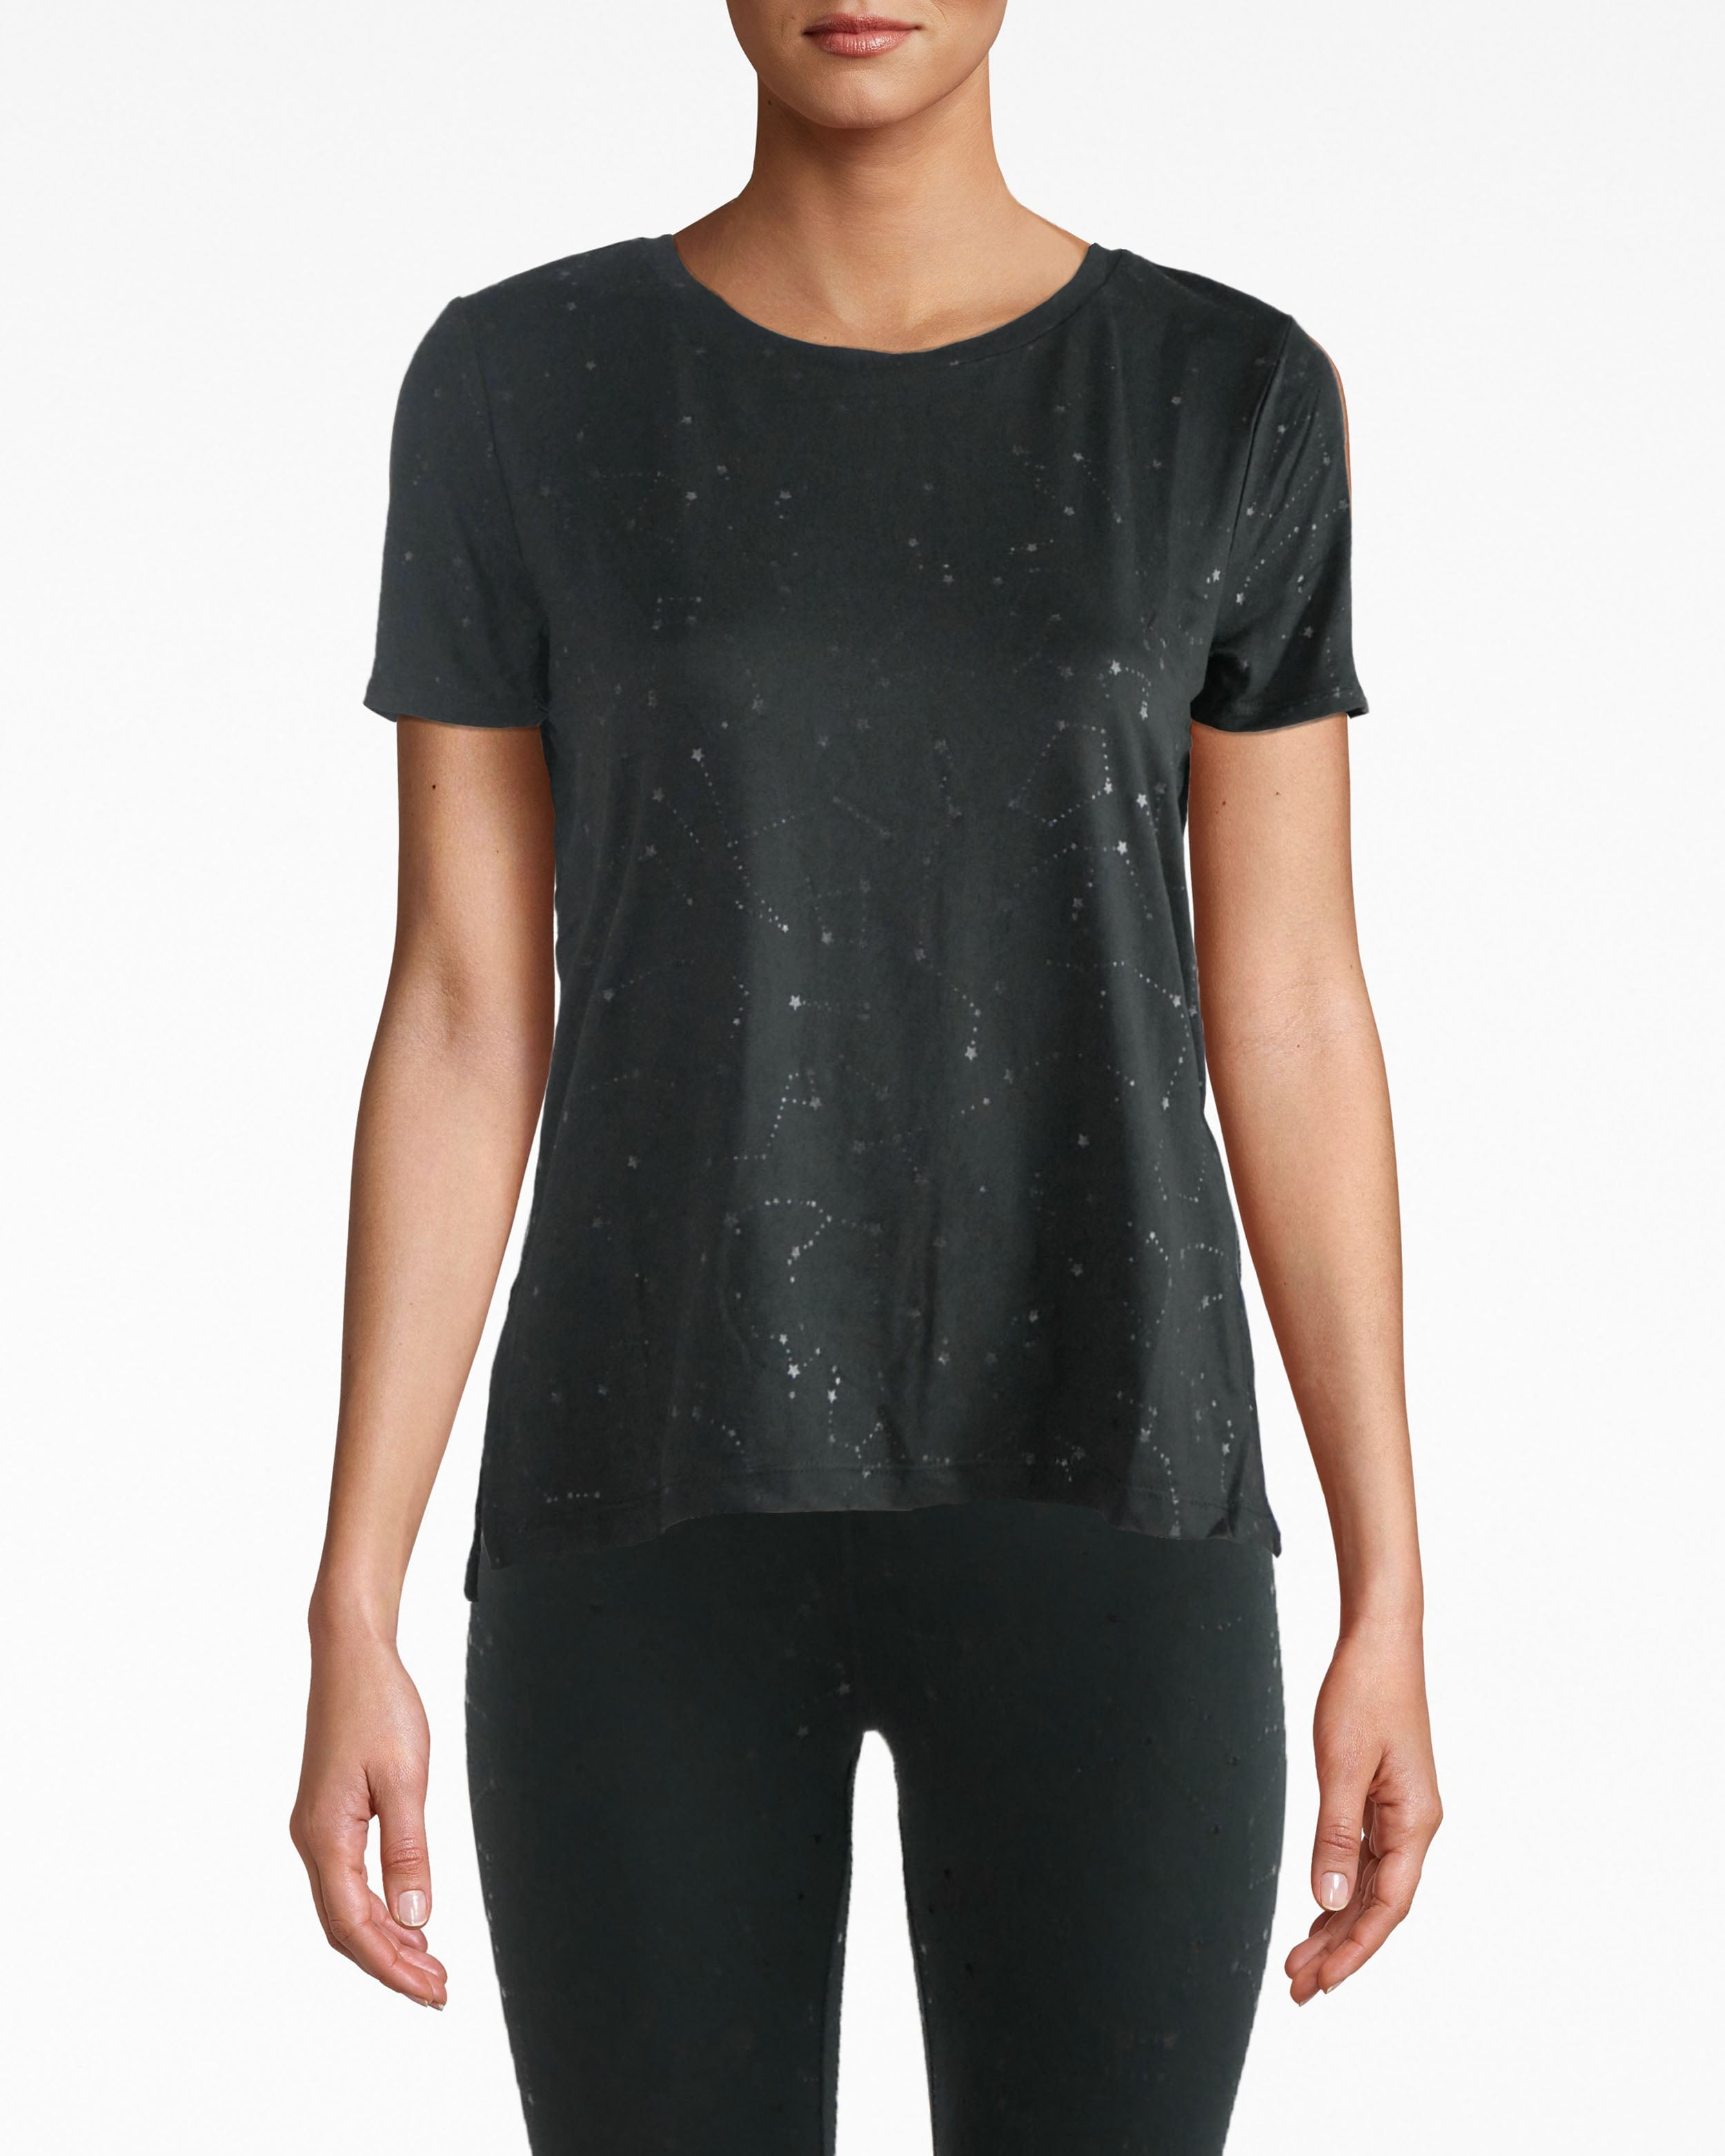 nicole miller high low tee | polyester/spandex | size petite